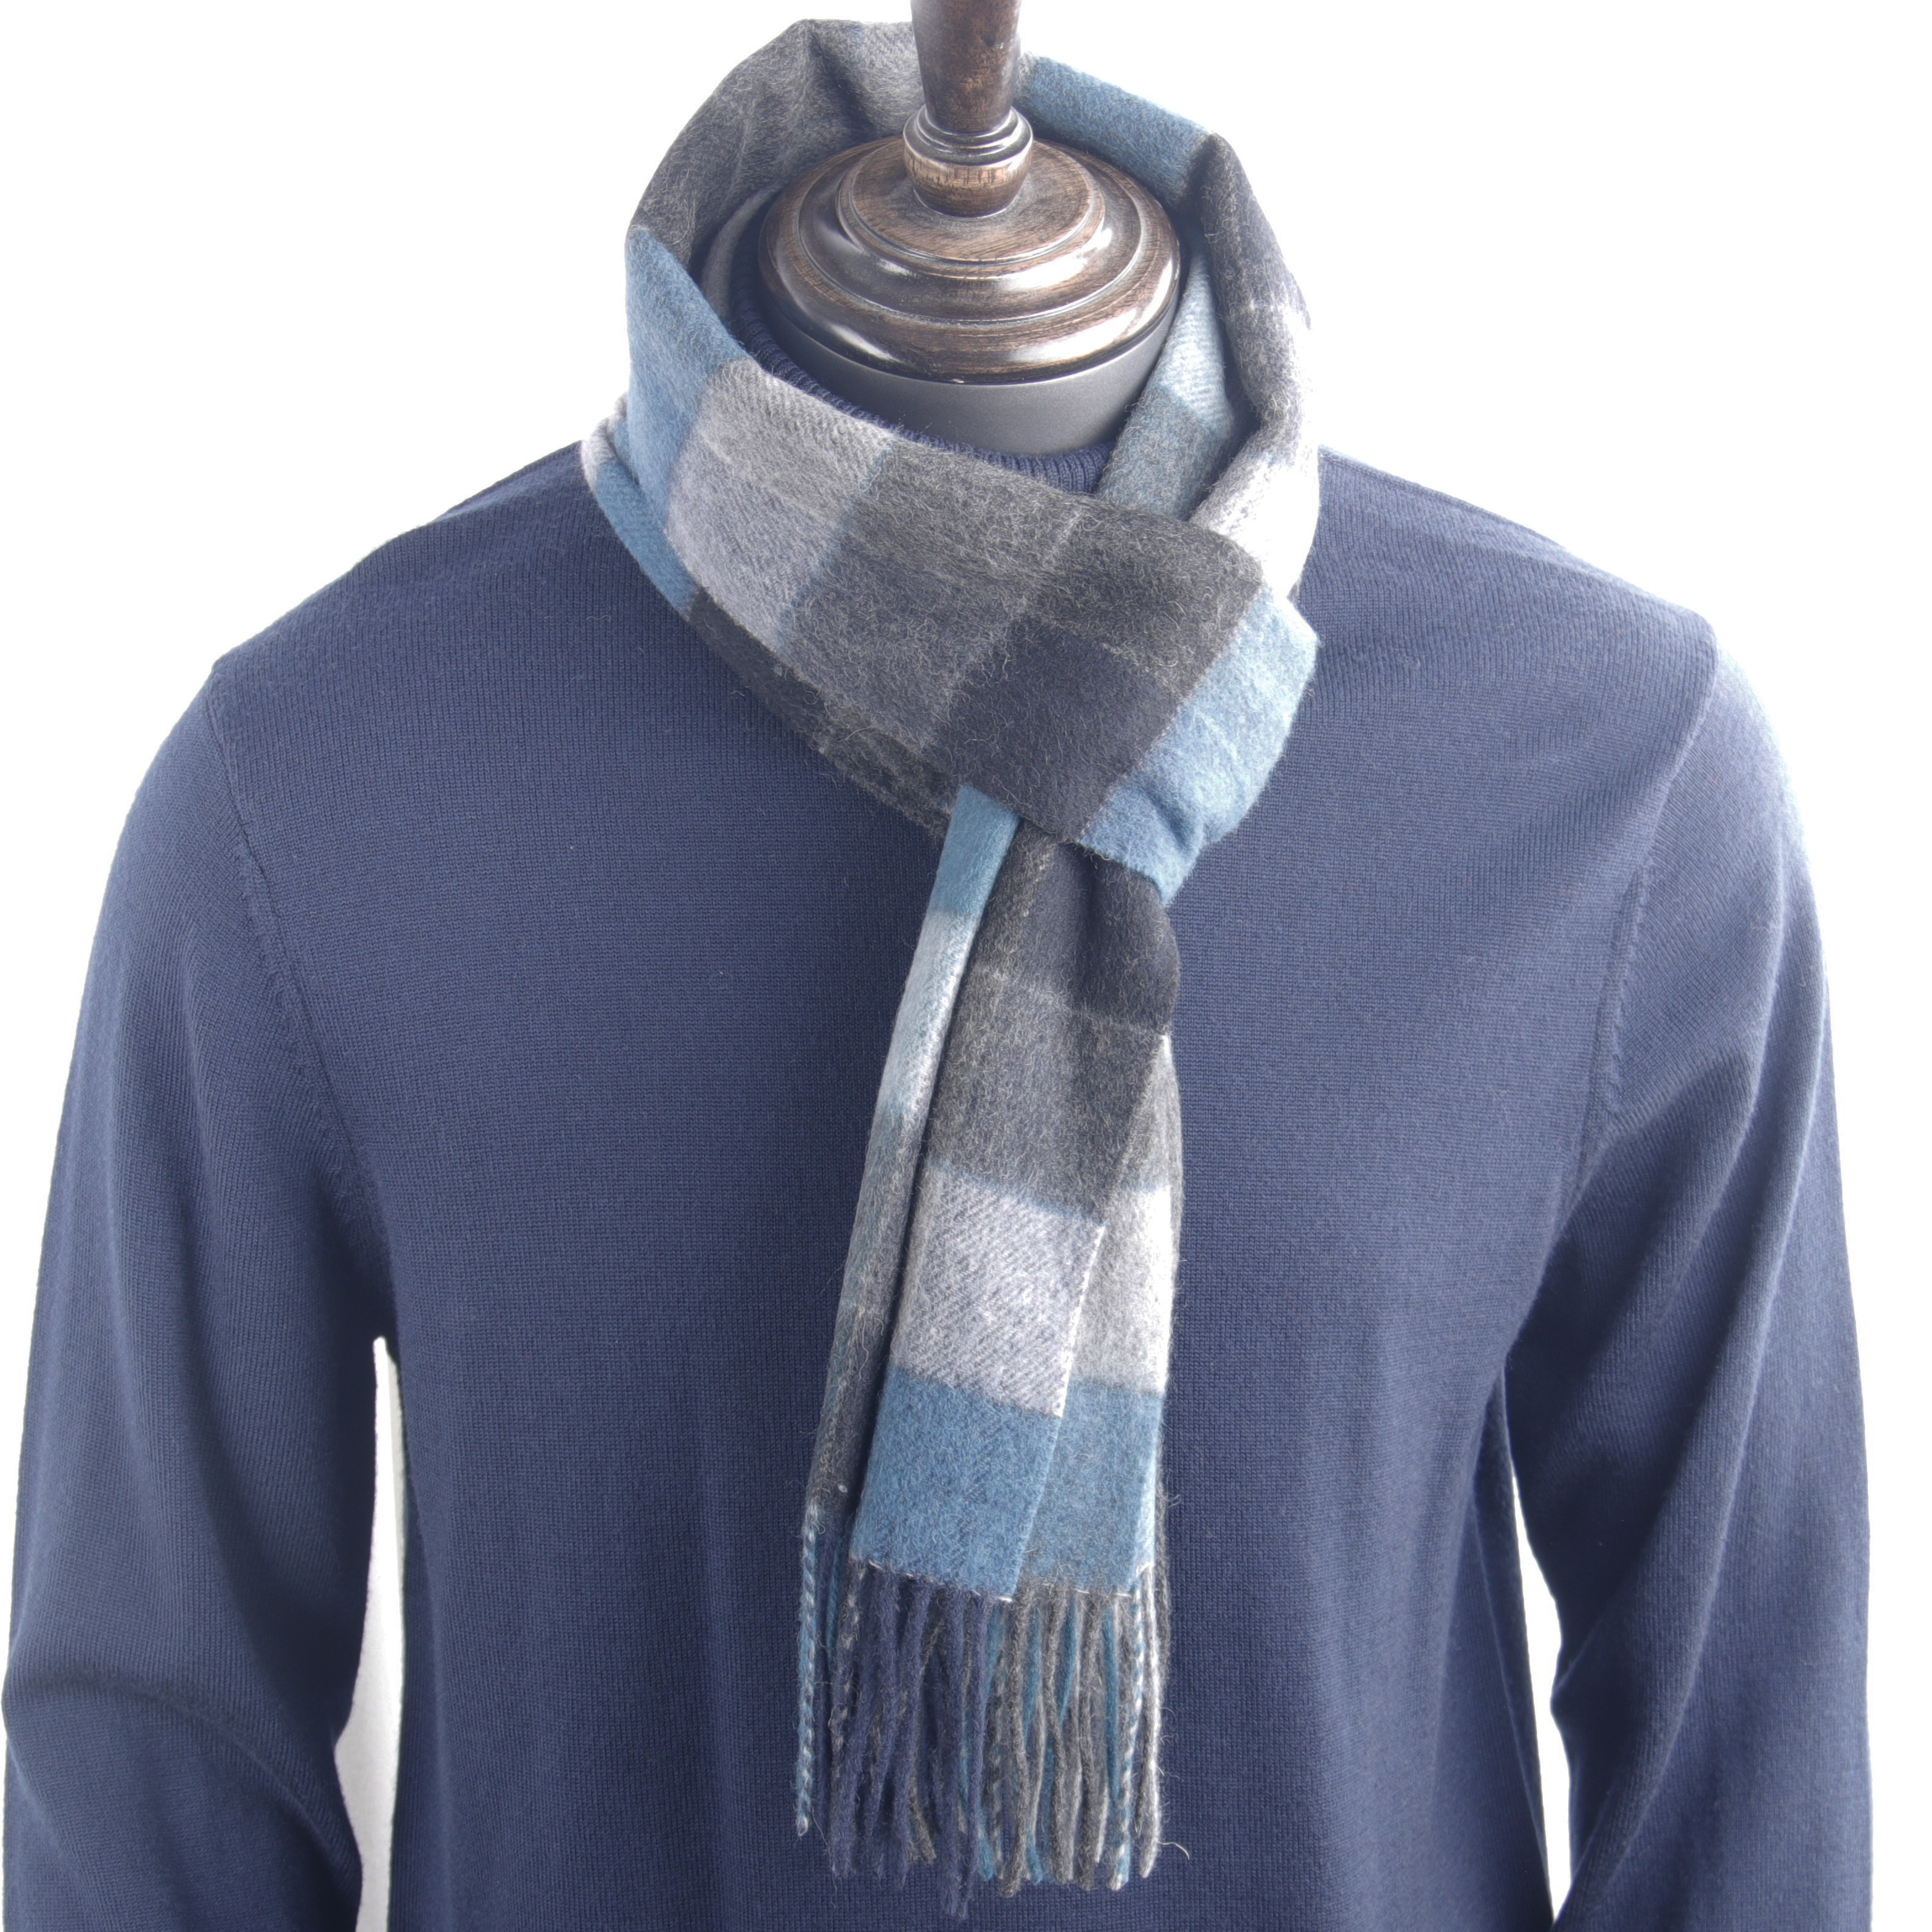 2020 Highly Selected 100% Wool Multi Color Plaid Scarf Blue Black Grey, Warm Winter Men Scarf Comfortable Material